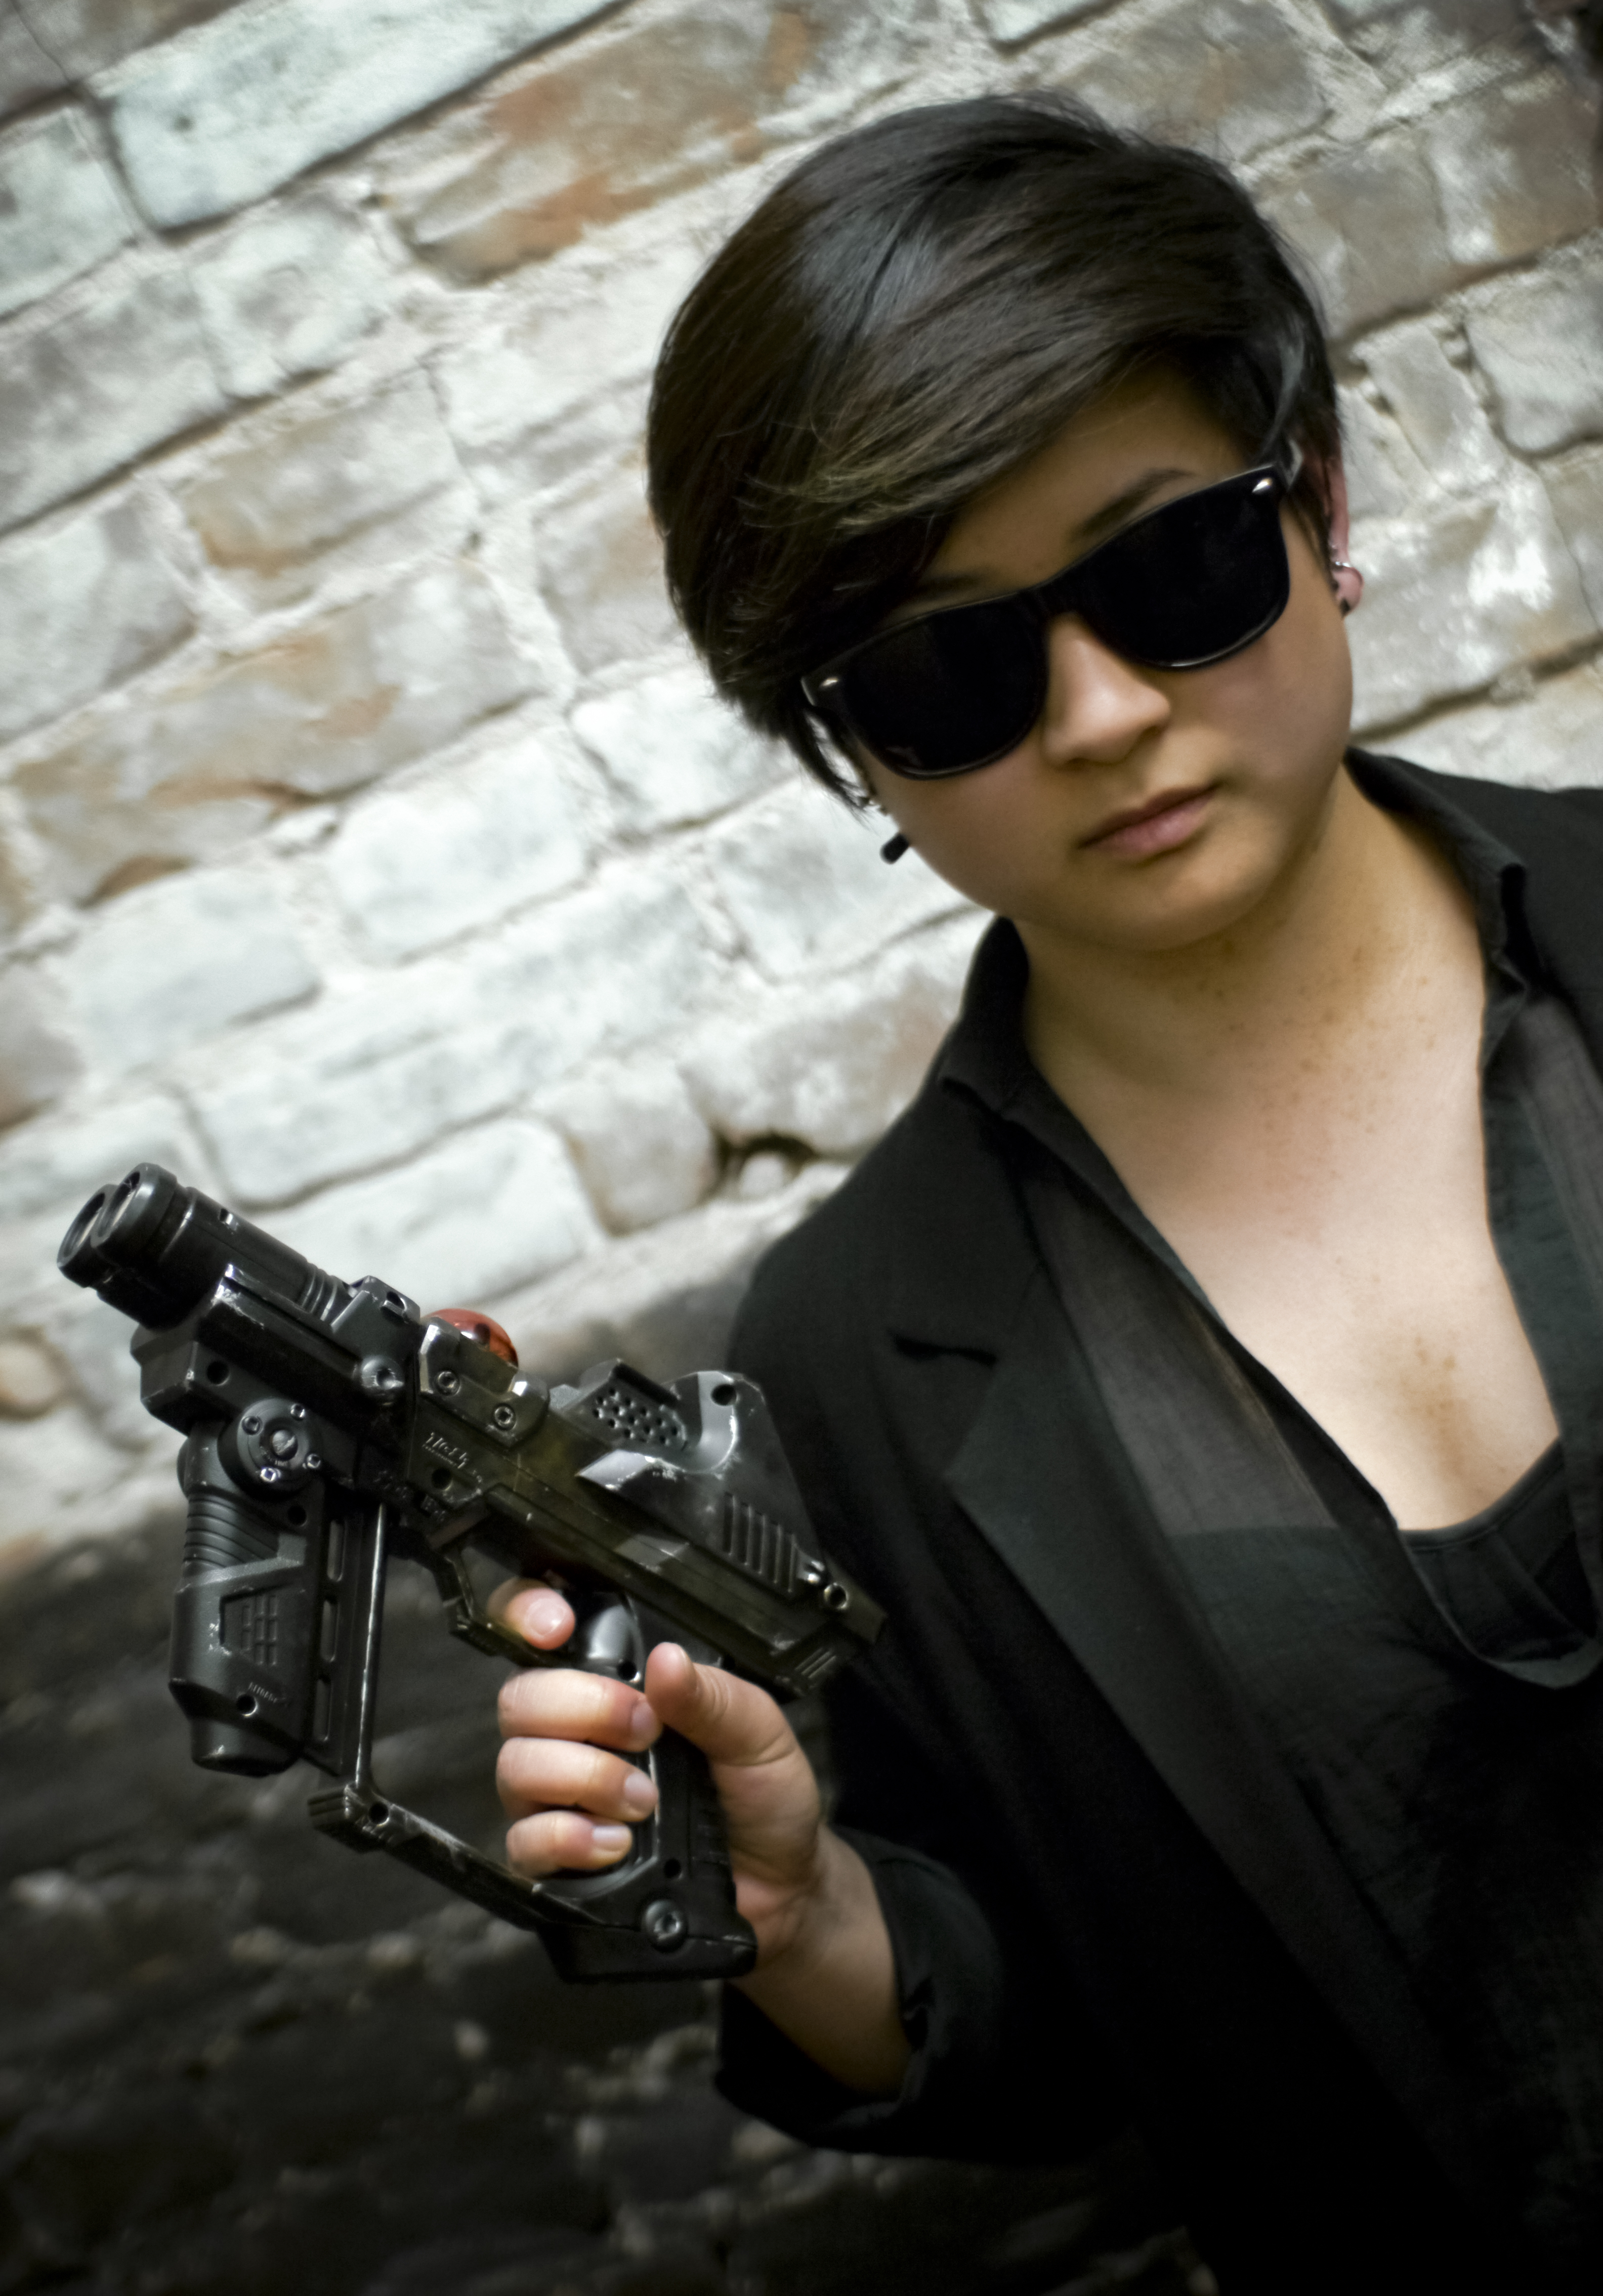 Gio Lin as The Specialist